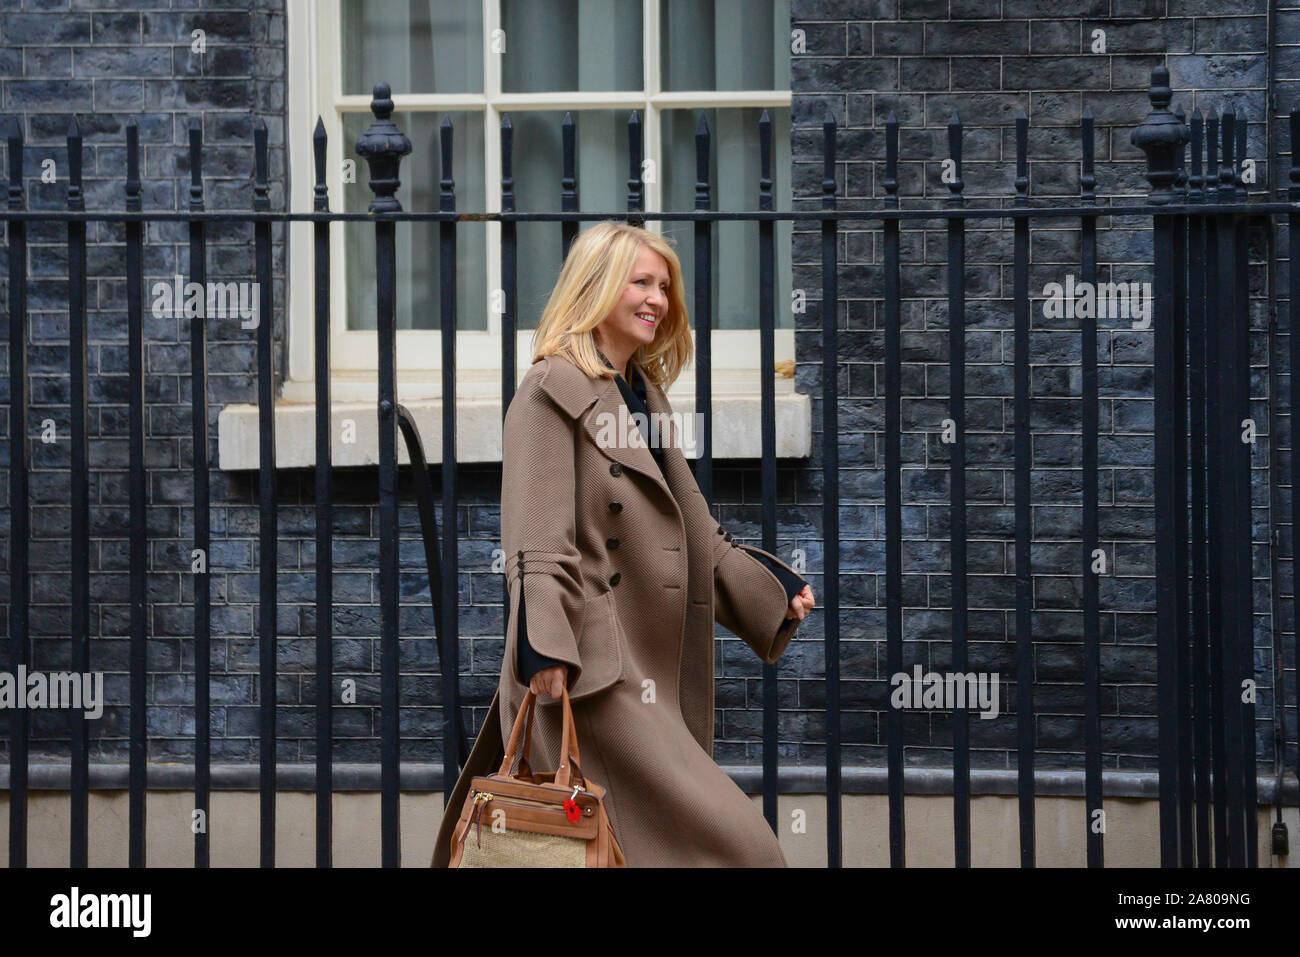 London, UK. 5th November 2019. Esther McVey, Housing Minster leaving Downing Street after a Cabinet Meeting. Claire Doherty/Alamy Live News. Stock Photo